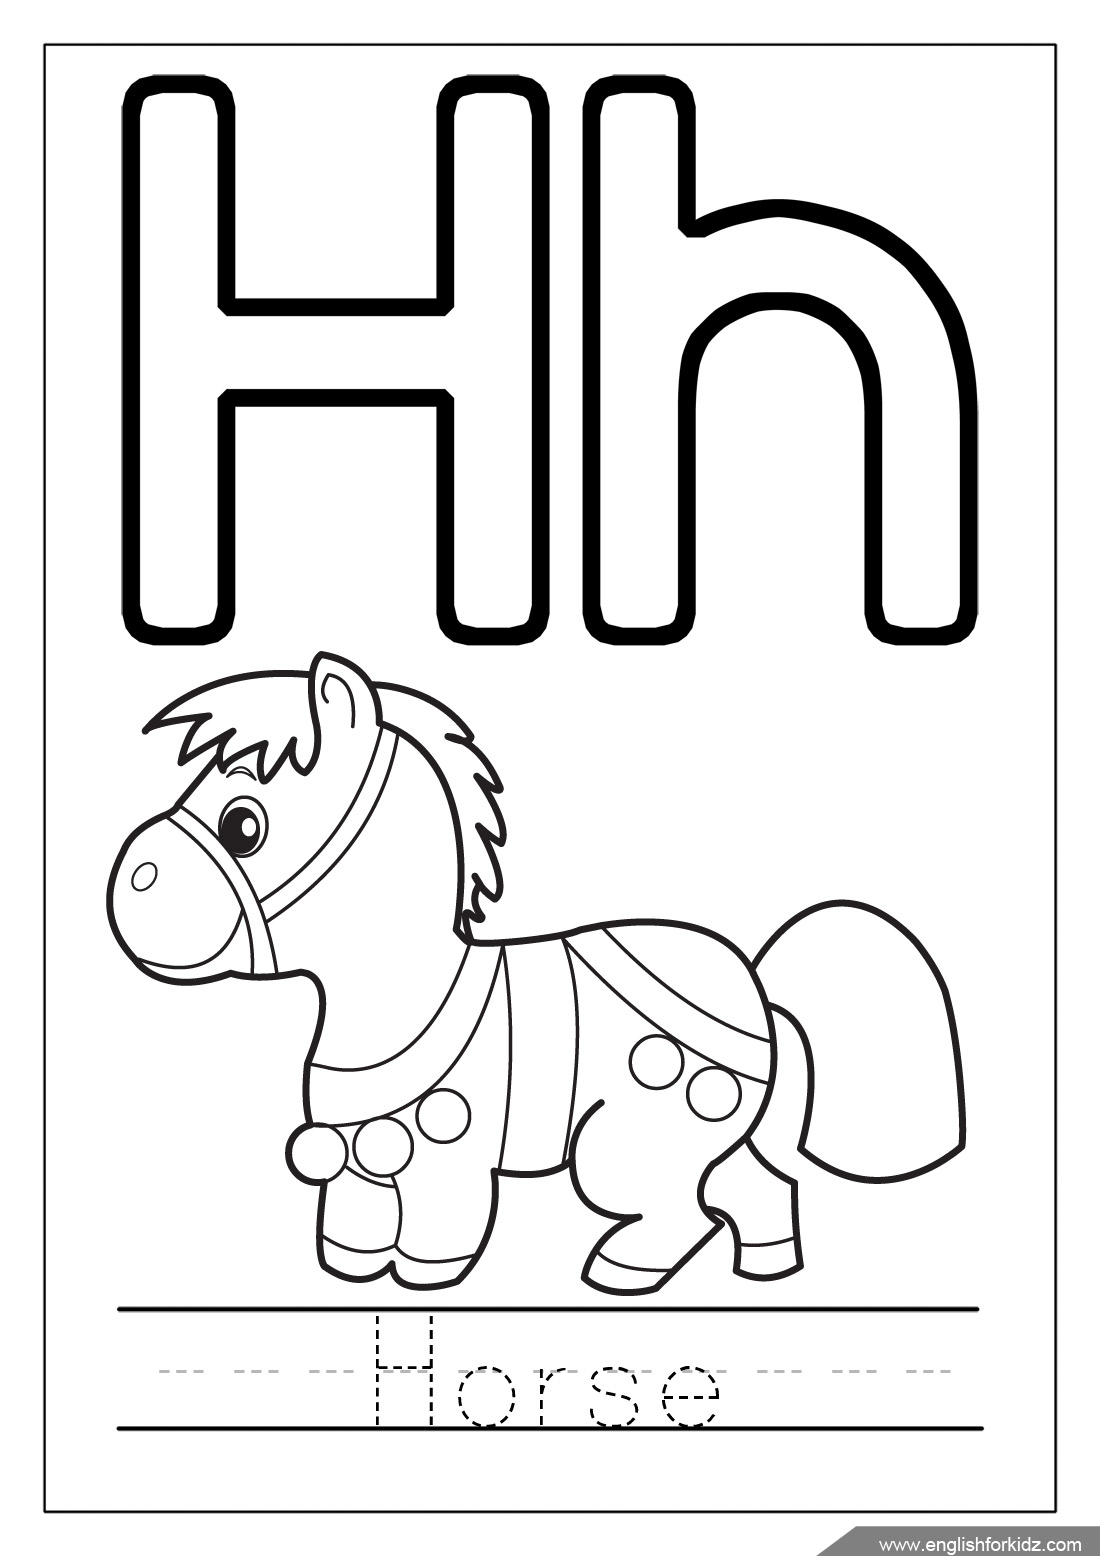 28 Letter H Colouring Sheet